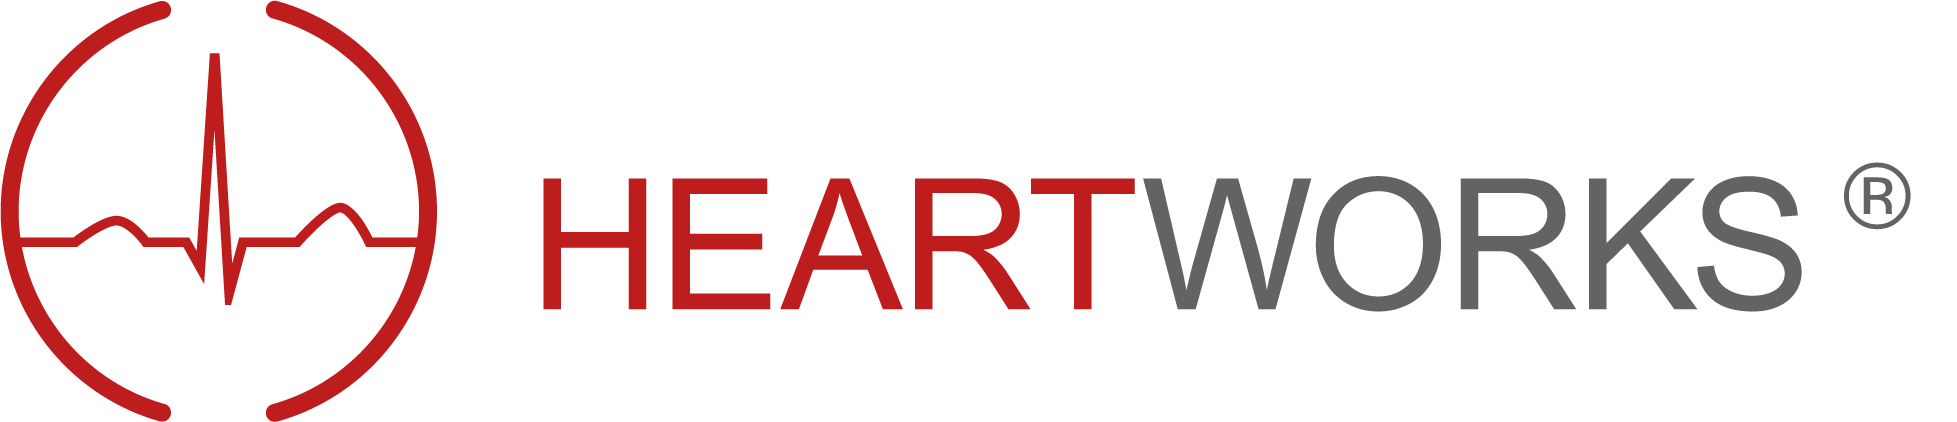 HeartWorks_RGB.png